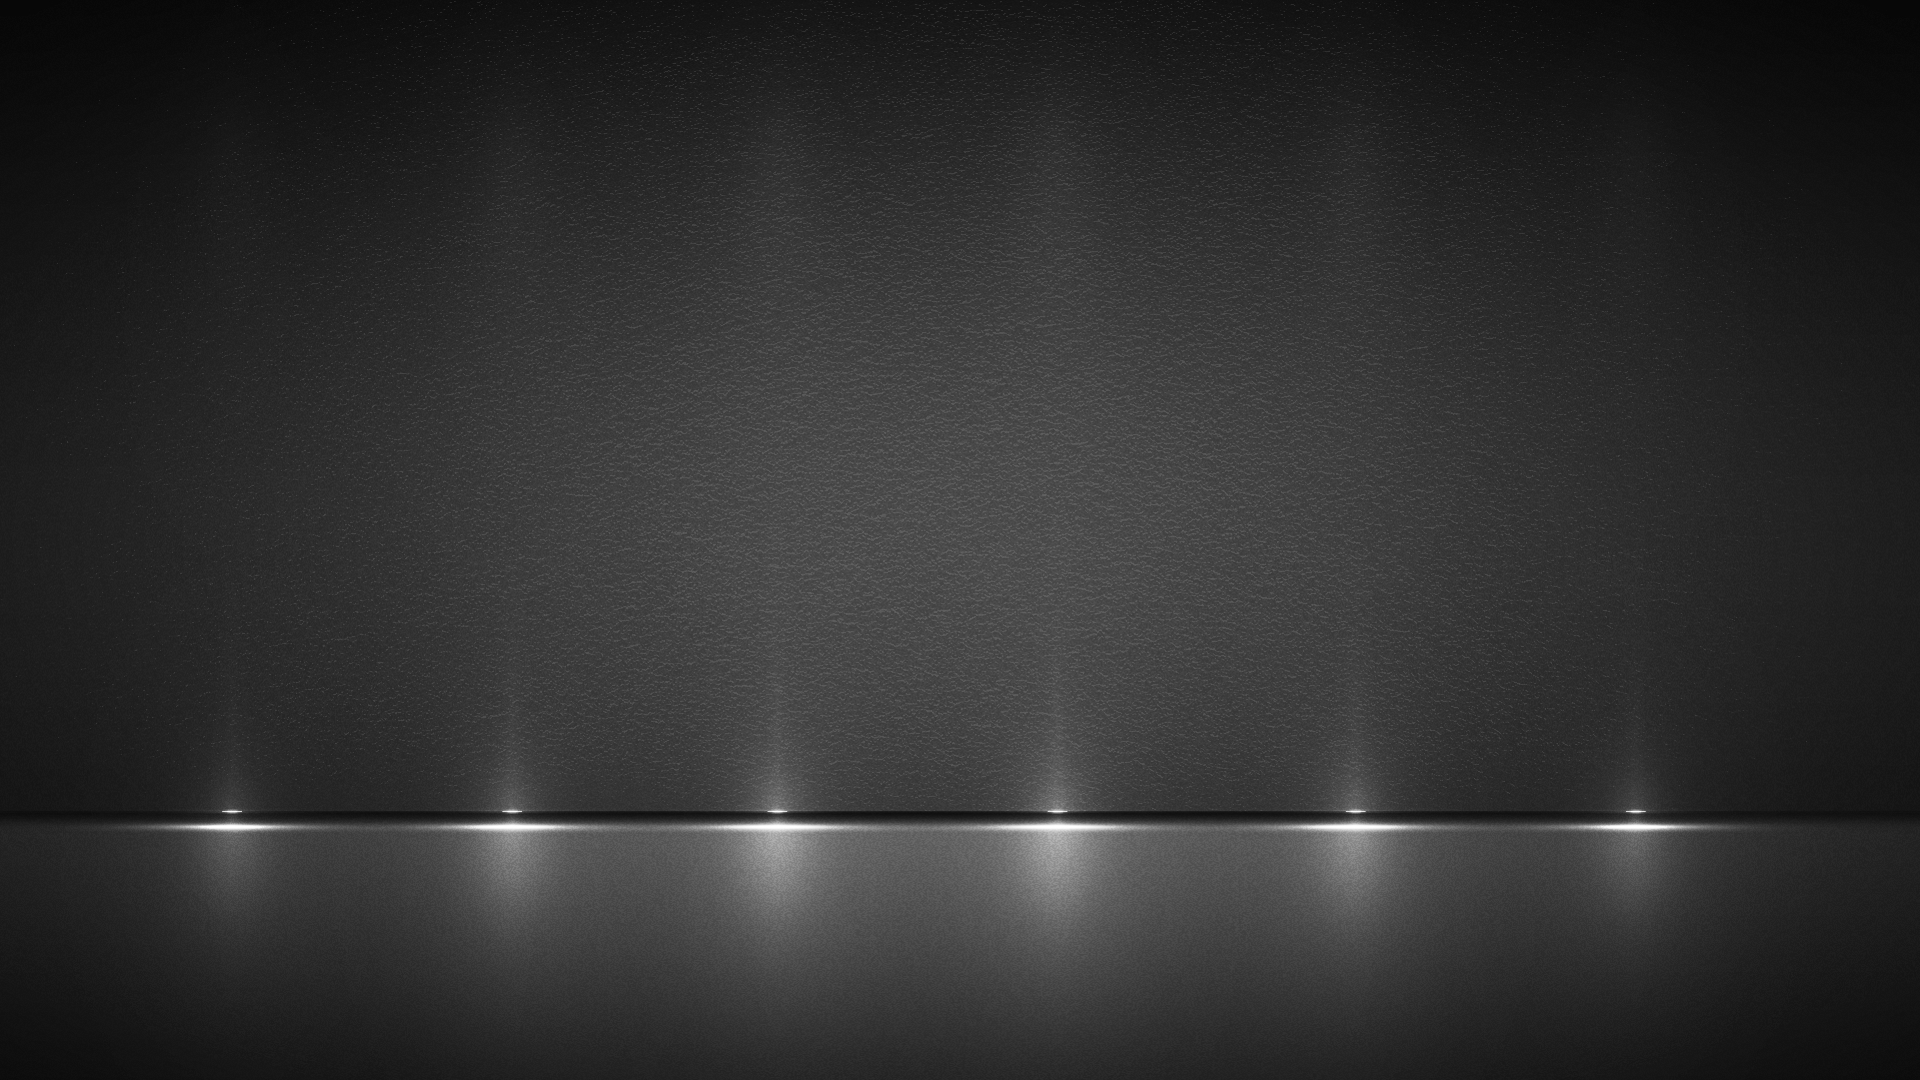 Elegant-grey-illumination-background-presentations-wallpaper-wp3805047